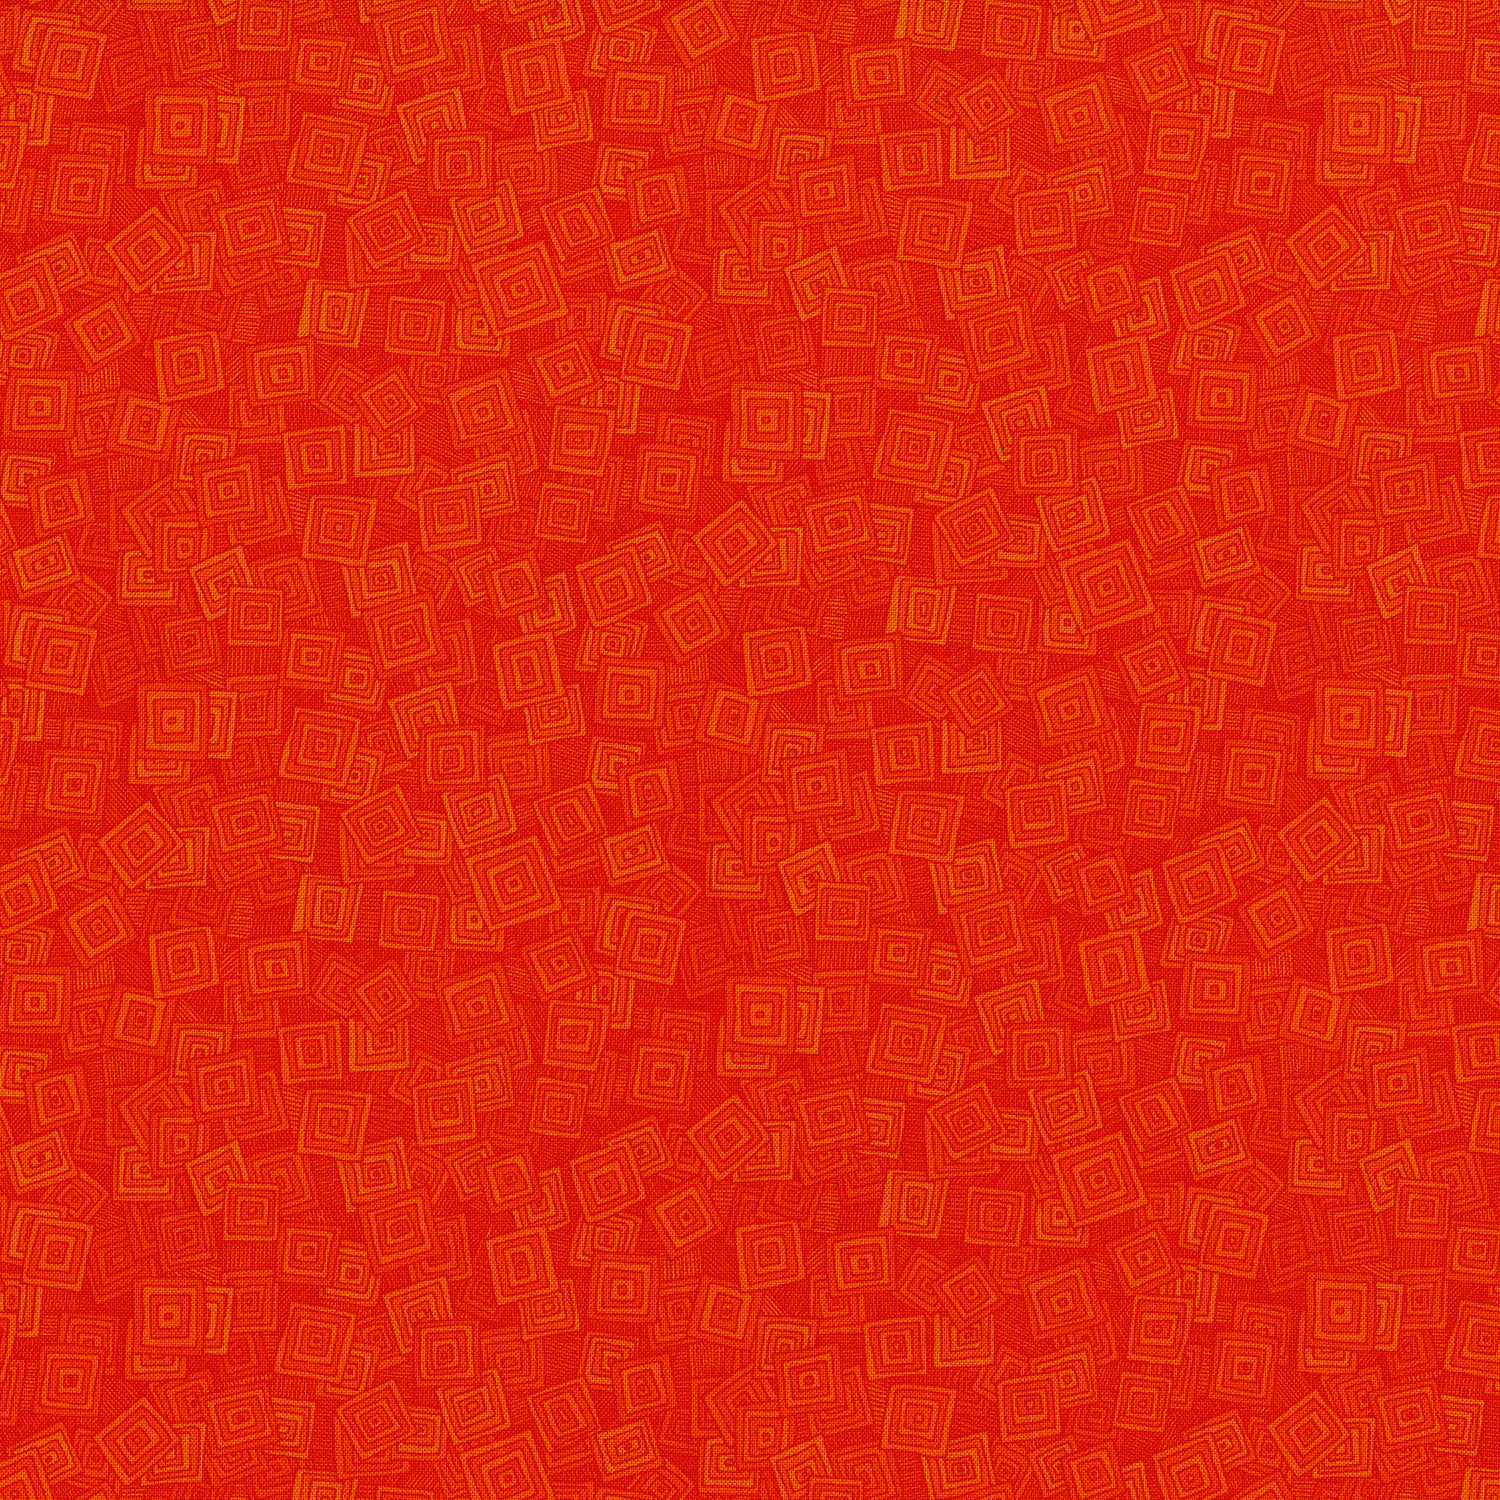 3215-004 OVERLAPPING SQUARES-MARMALADE